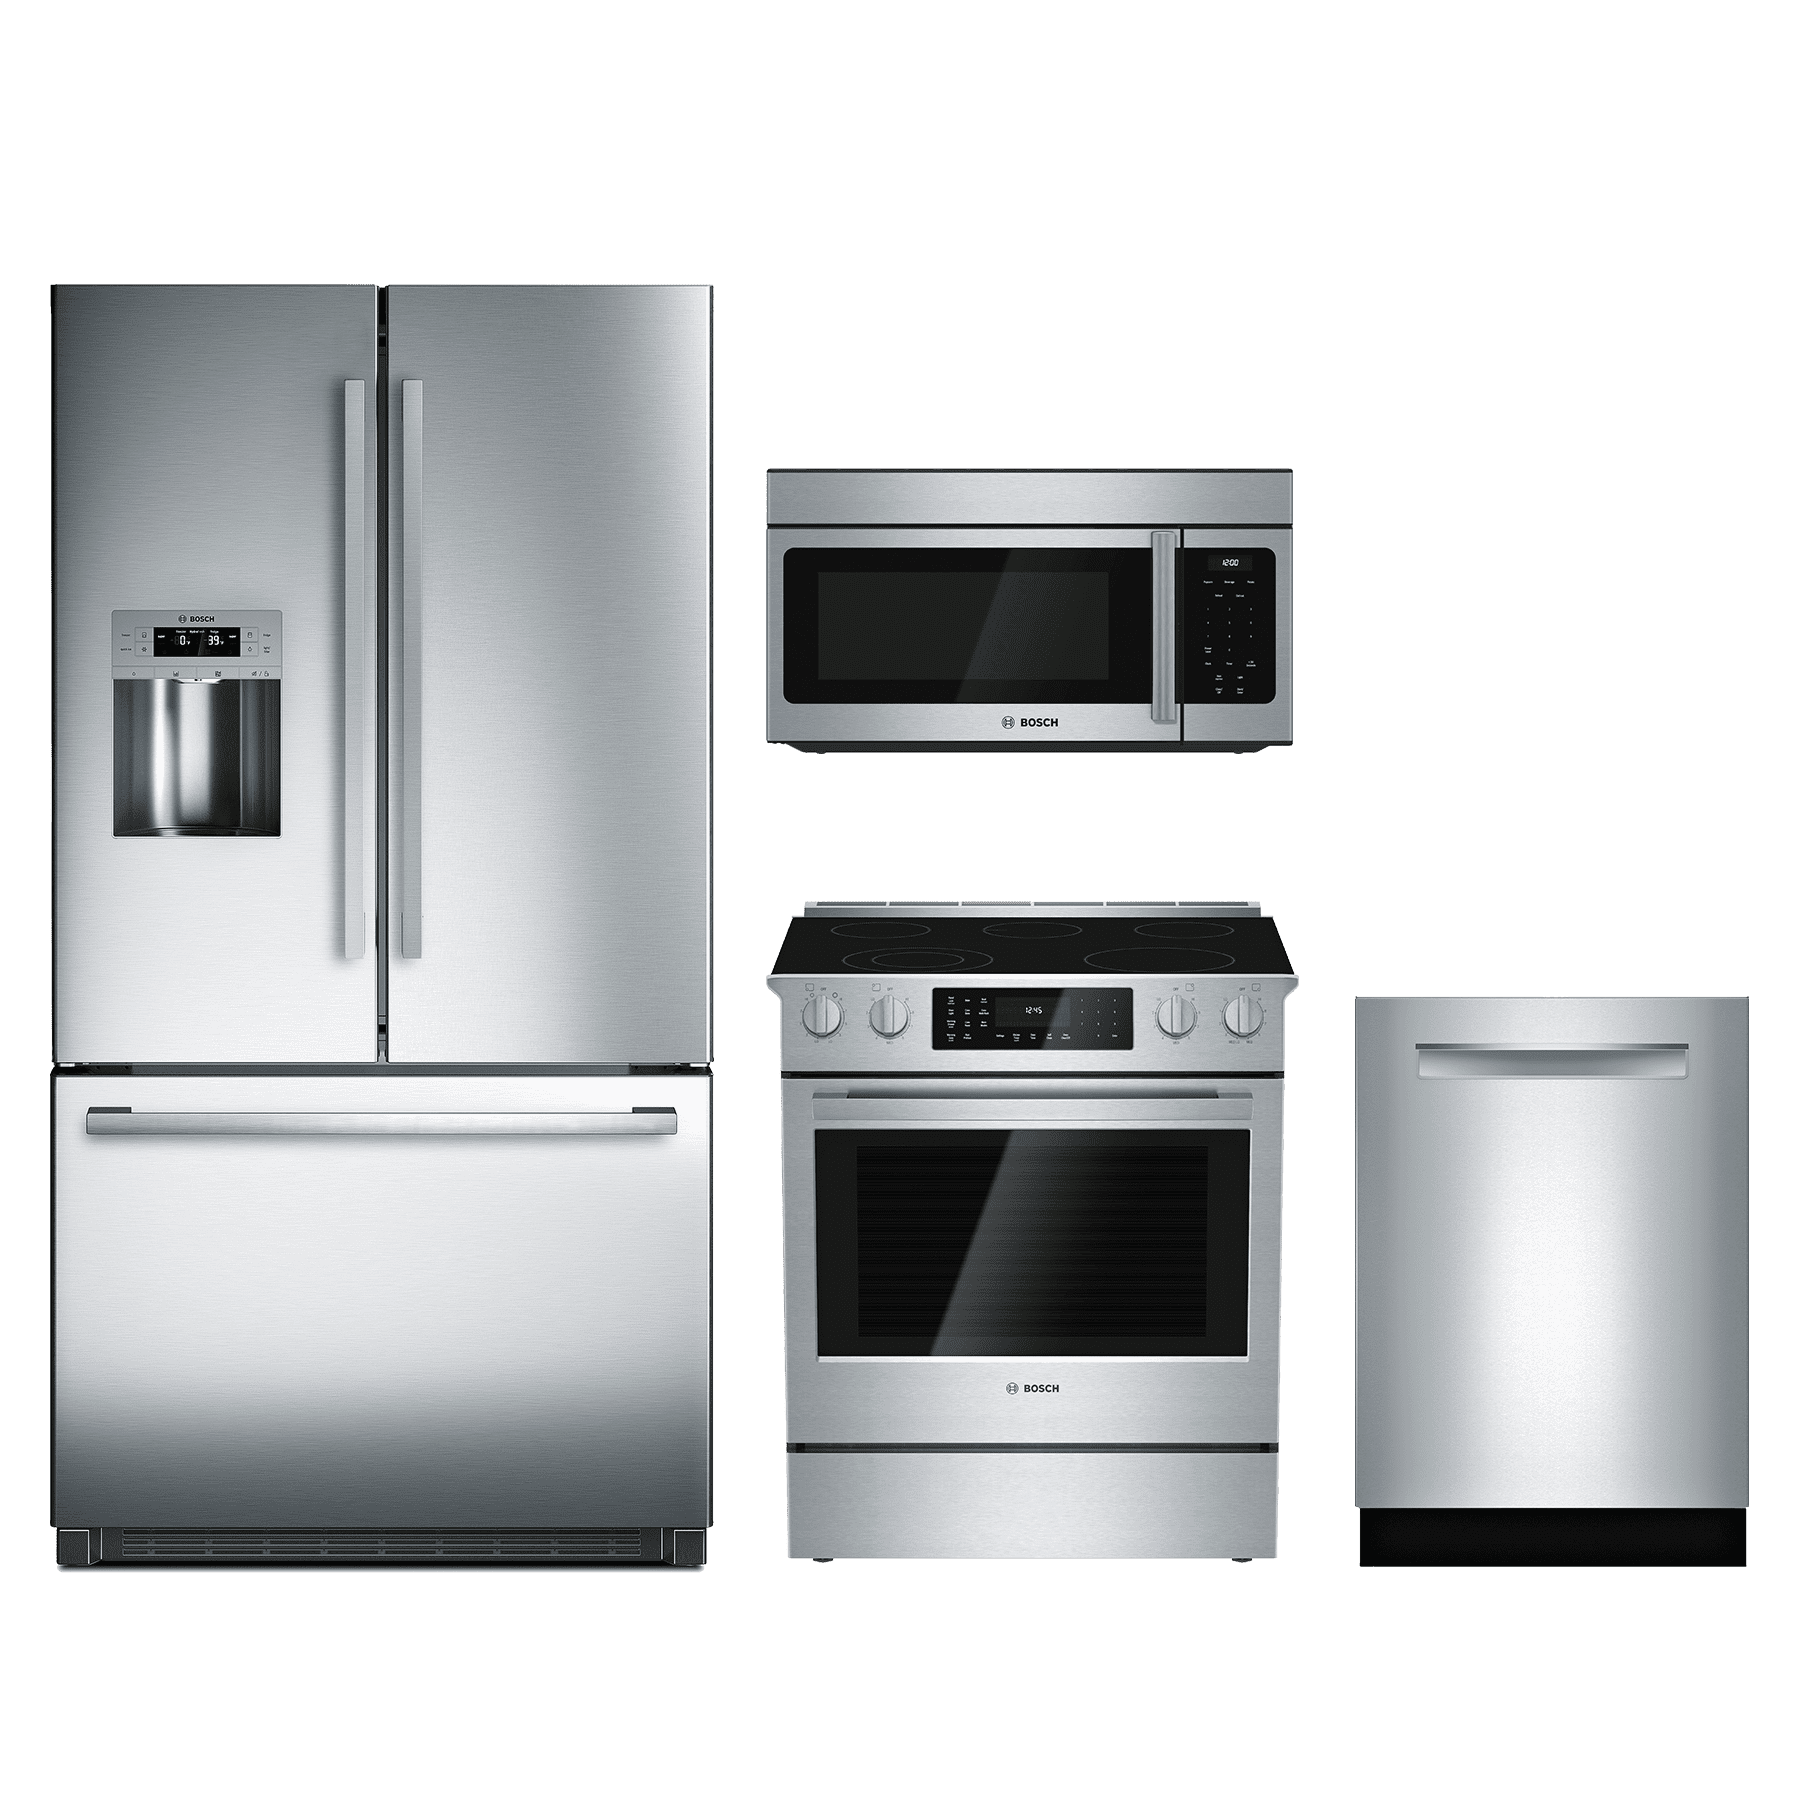 Kitchenaid 4 Piece Kitchen Appliance Package With Electric: Bosch 800 Series 4 Piece Kitchen Package-Stainless Steel